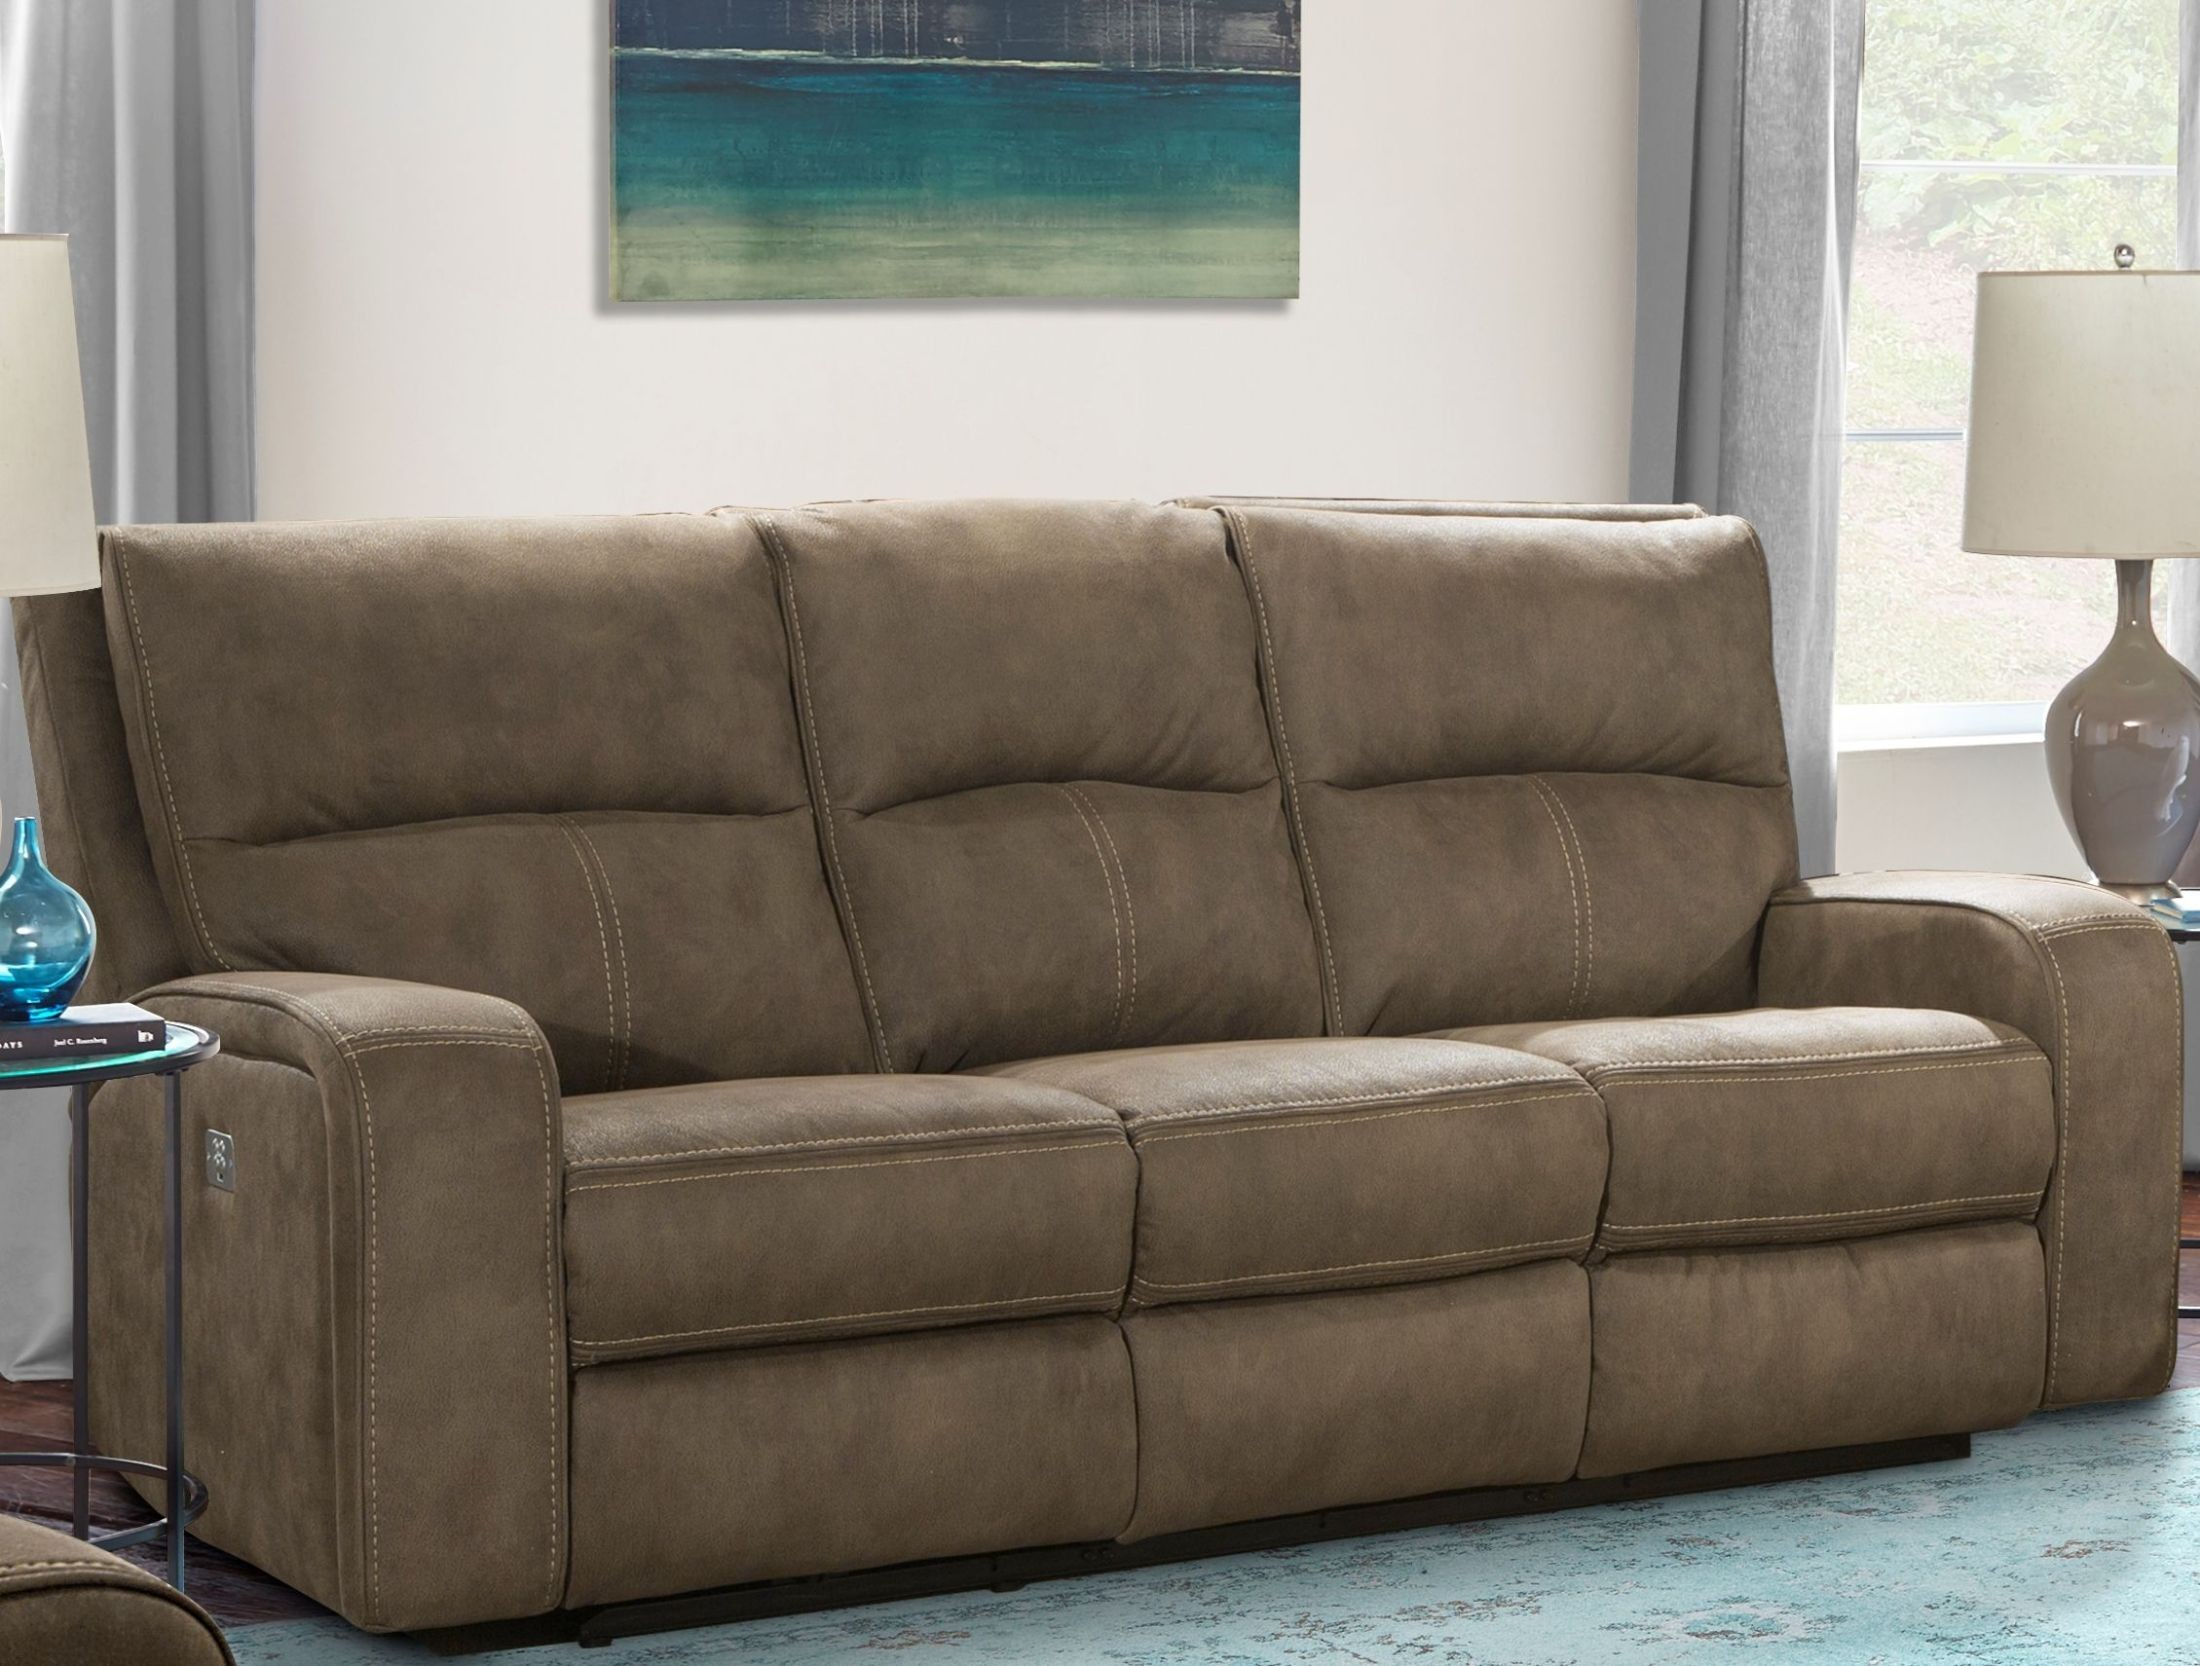 Polaris Kahlua Dual Power Reclining Sofa From Parker